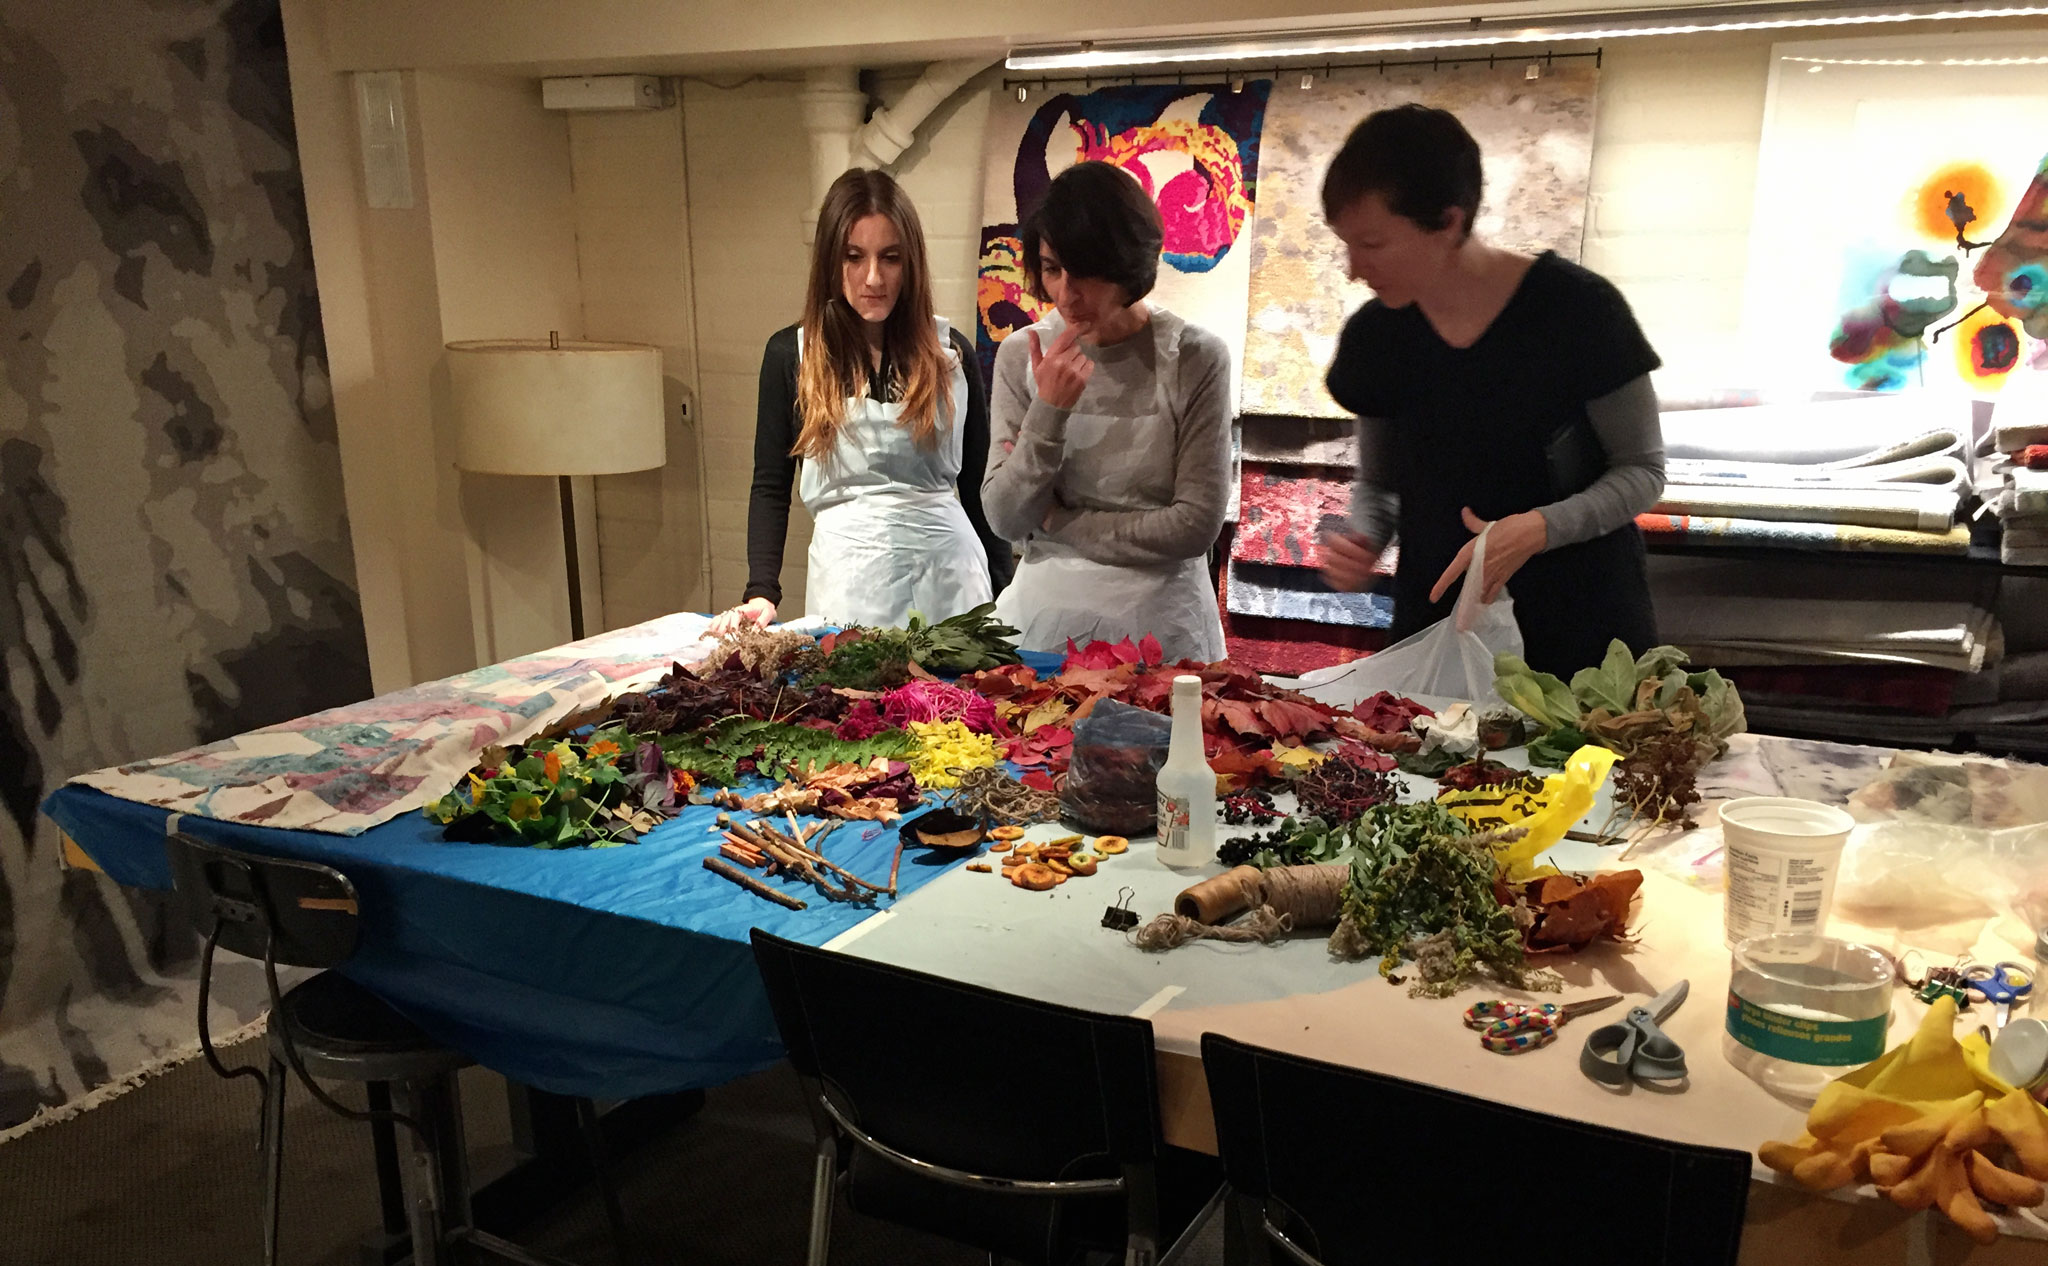 Some of the staff of Creative Matters reviewing the flowers, berries, sticks, and other natural items before the start of the Natural Dyes Art Day, 7 November 2016. | Image by The Ruggist.